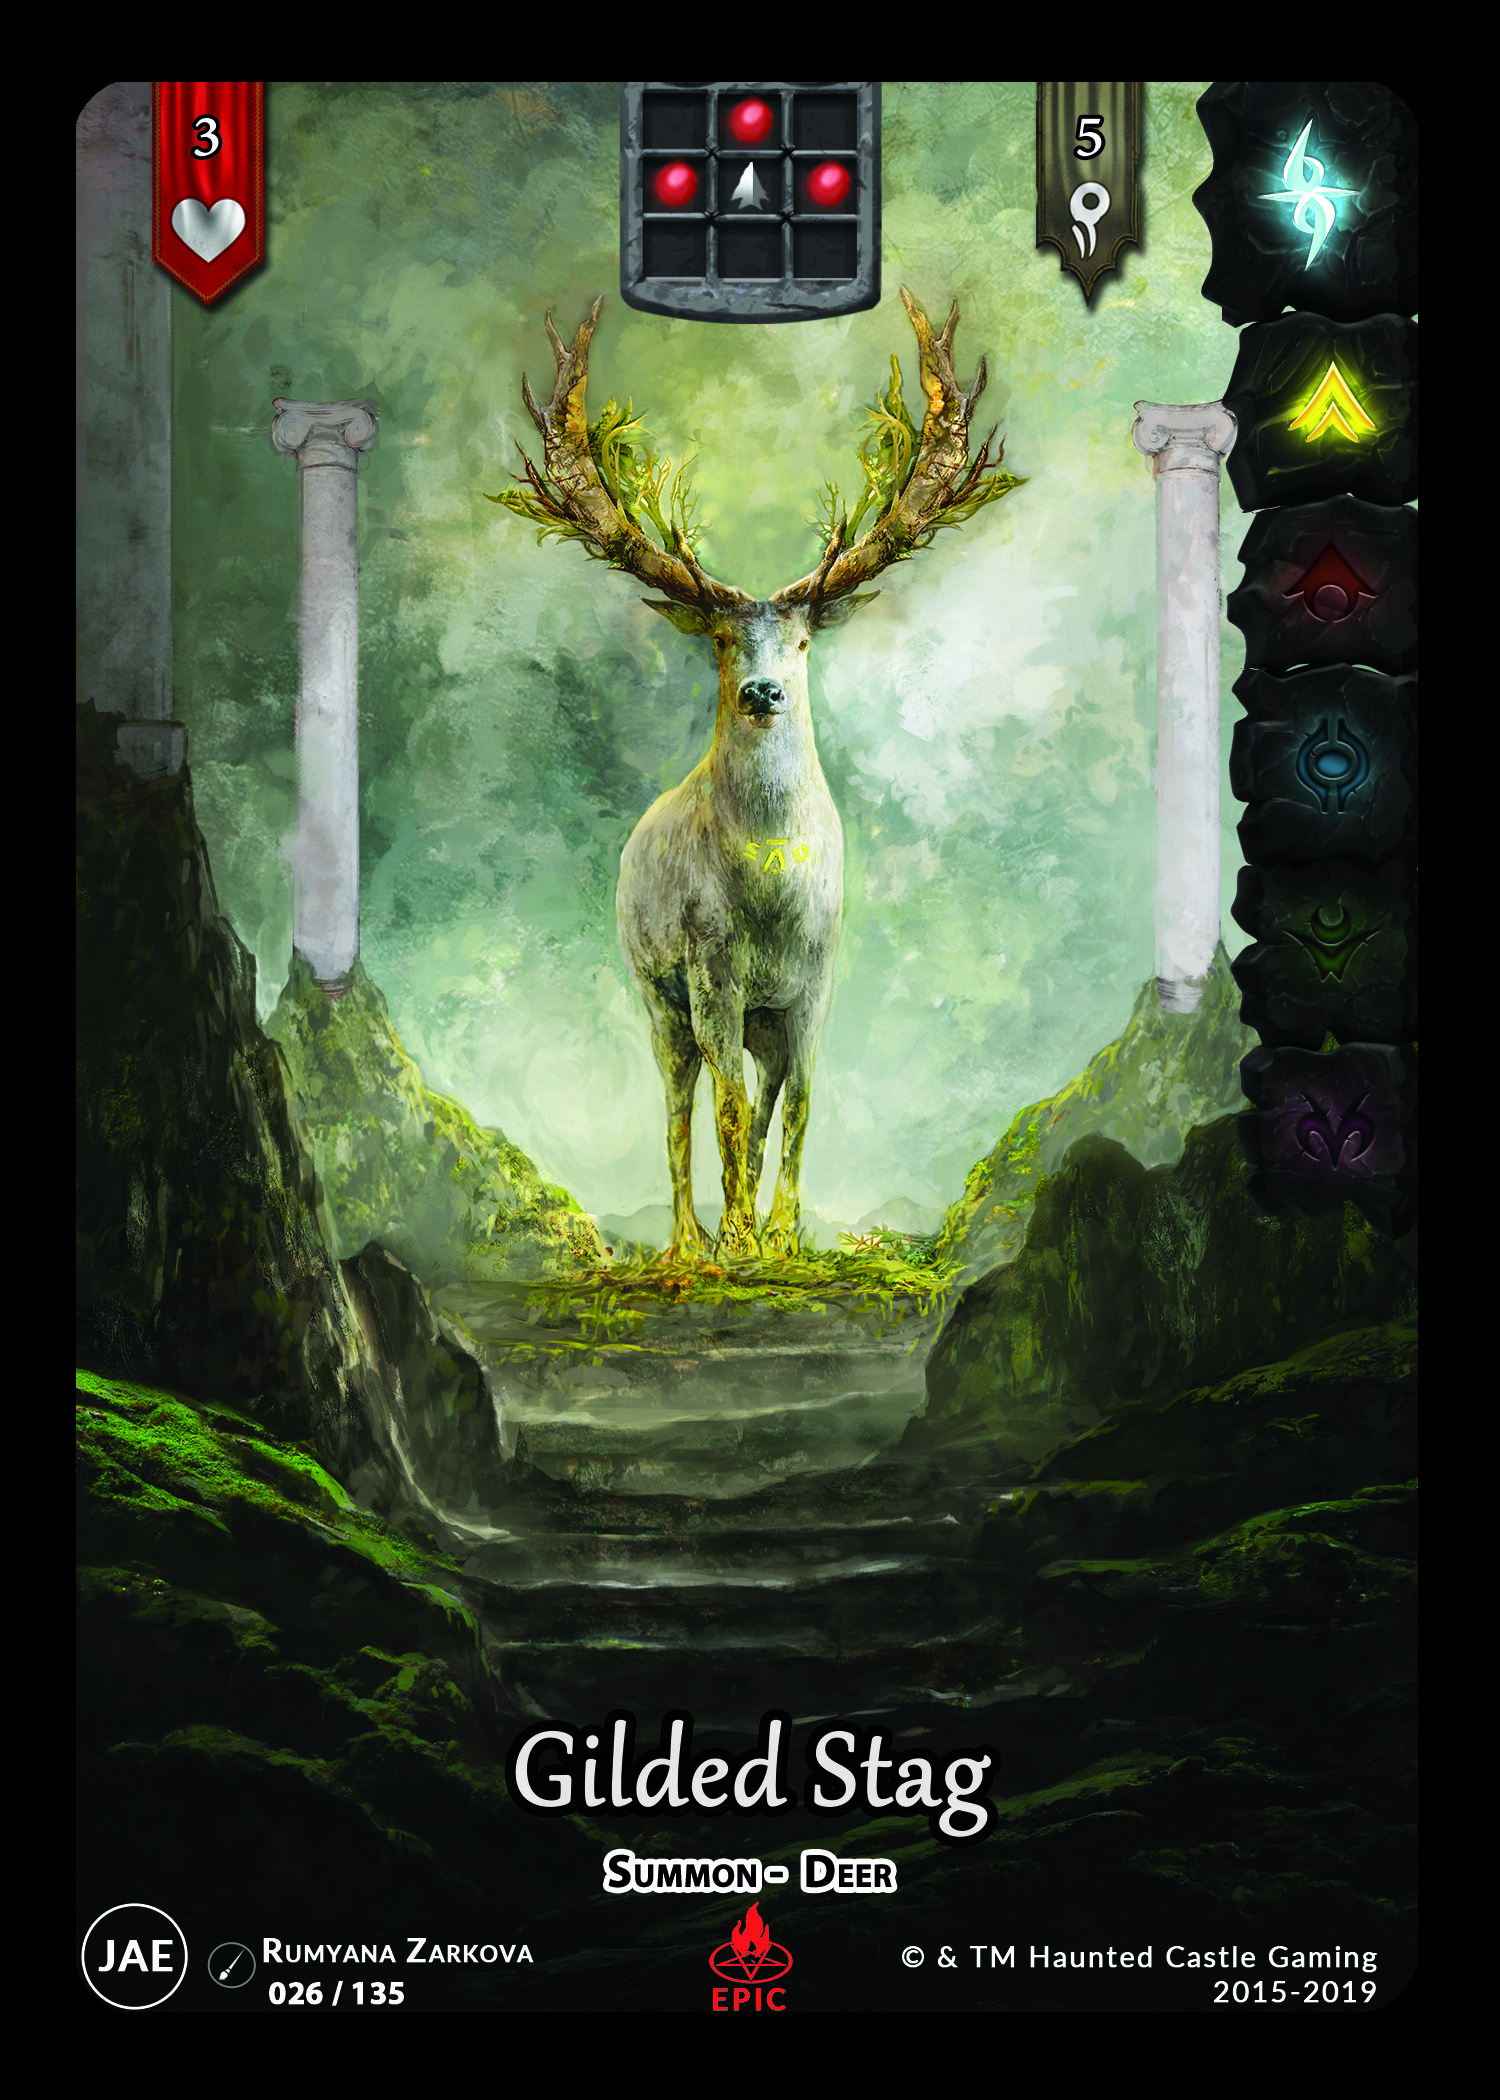 026-Gilded Stag-Epic.jpg